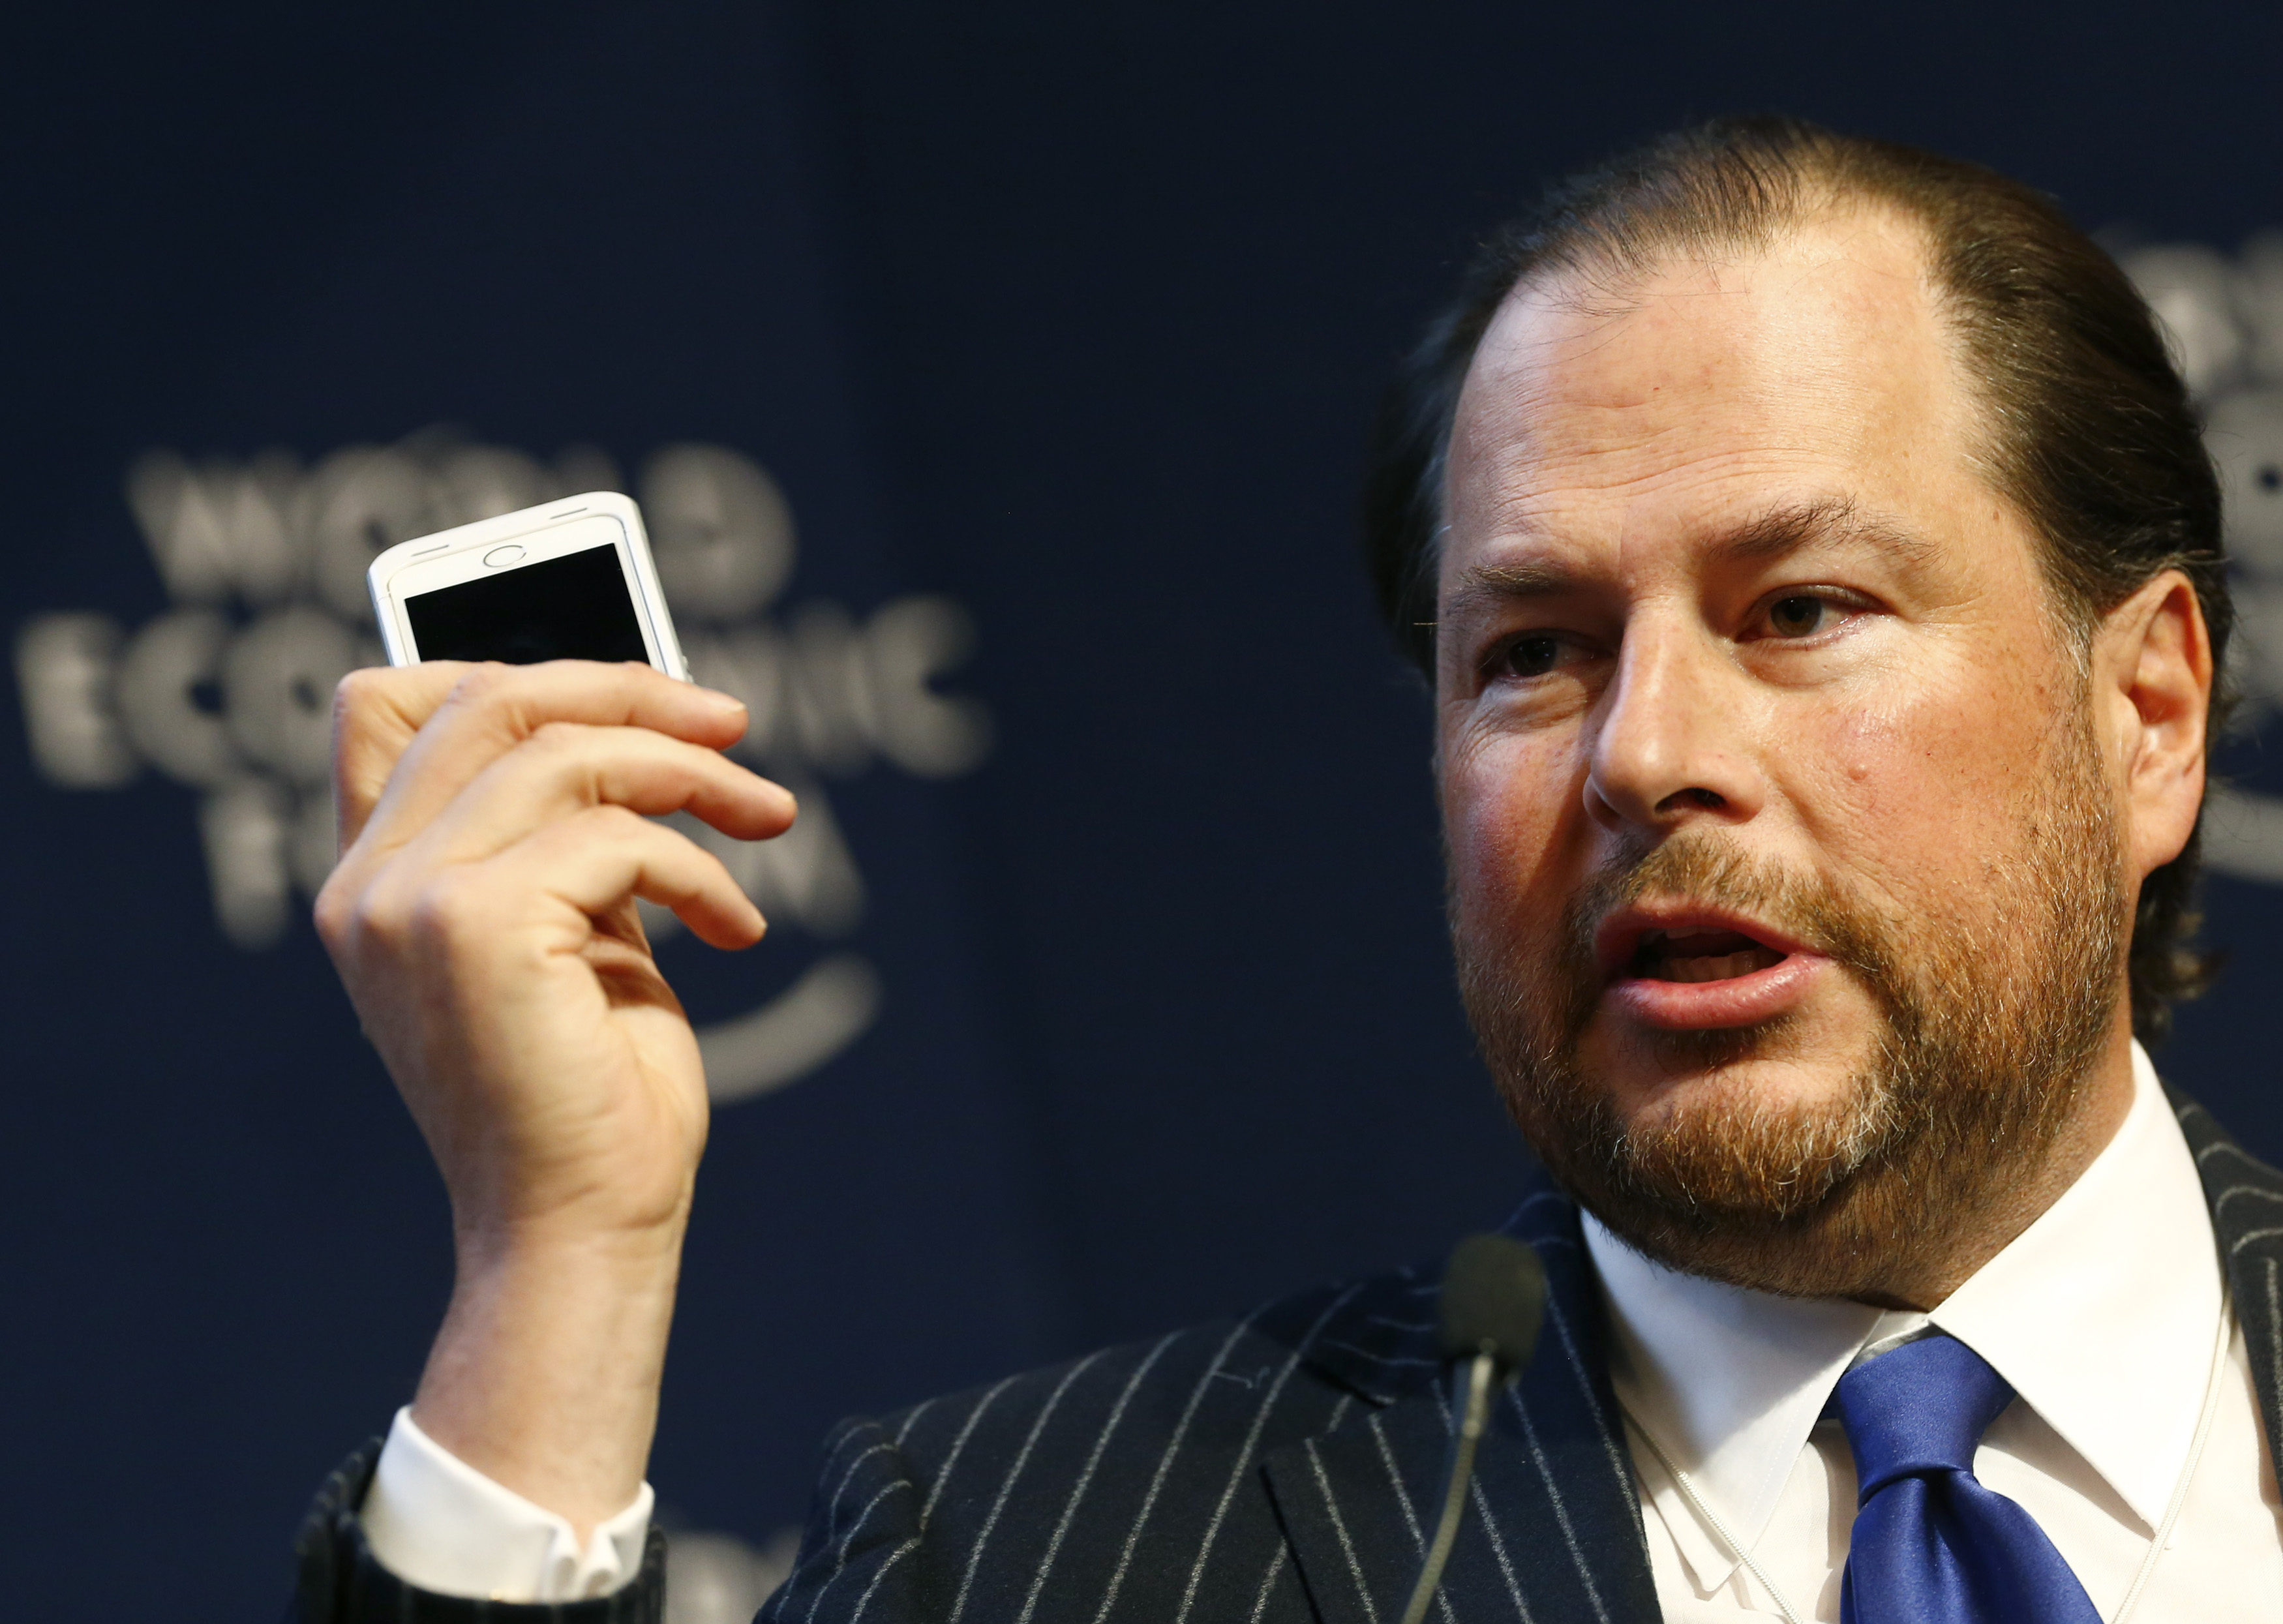 Marc R. Benioff, Chairman and Chief Executive Officer of Salesforce.com, speaks during a session at the annual meeting of the World Economic Forum (WEF) in Davos January 22, 2014. REUTERS/Ruben Sprich (SWITZERLAND - Tags: POLITICS BUSINESS HEADSHOT) - RTX17PAX